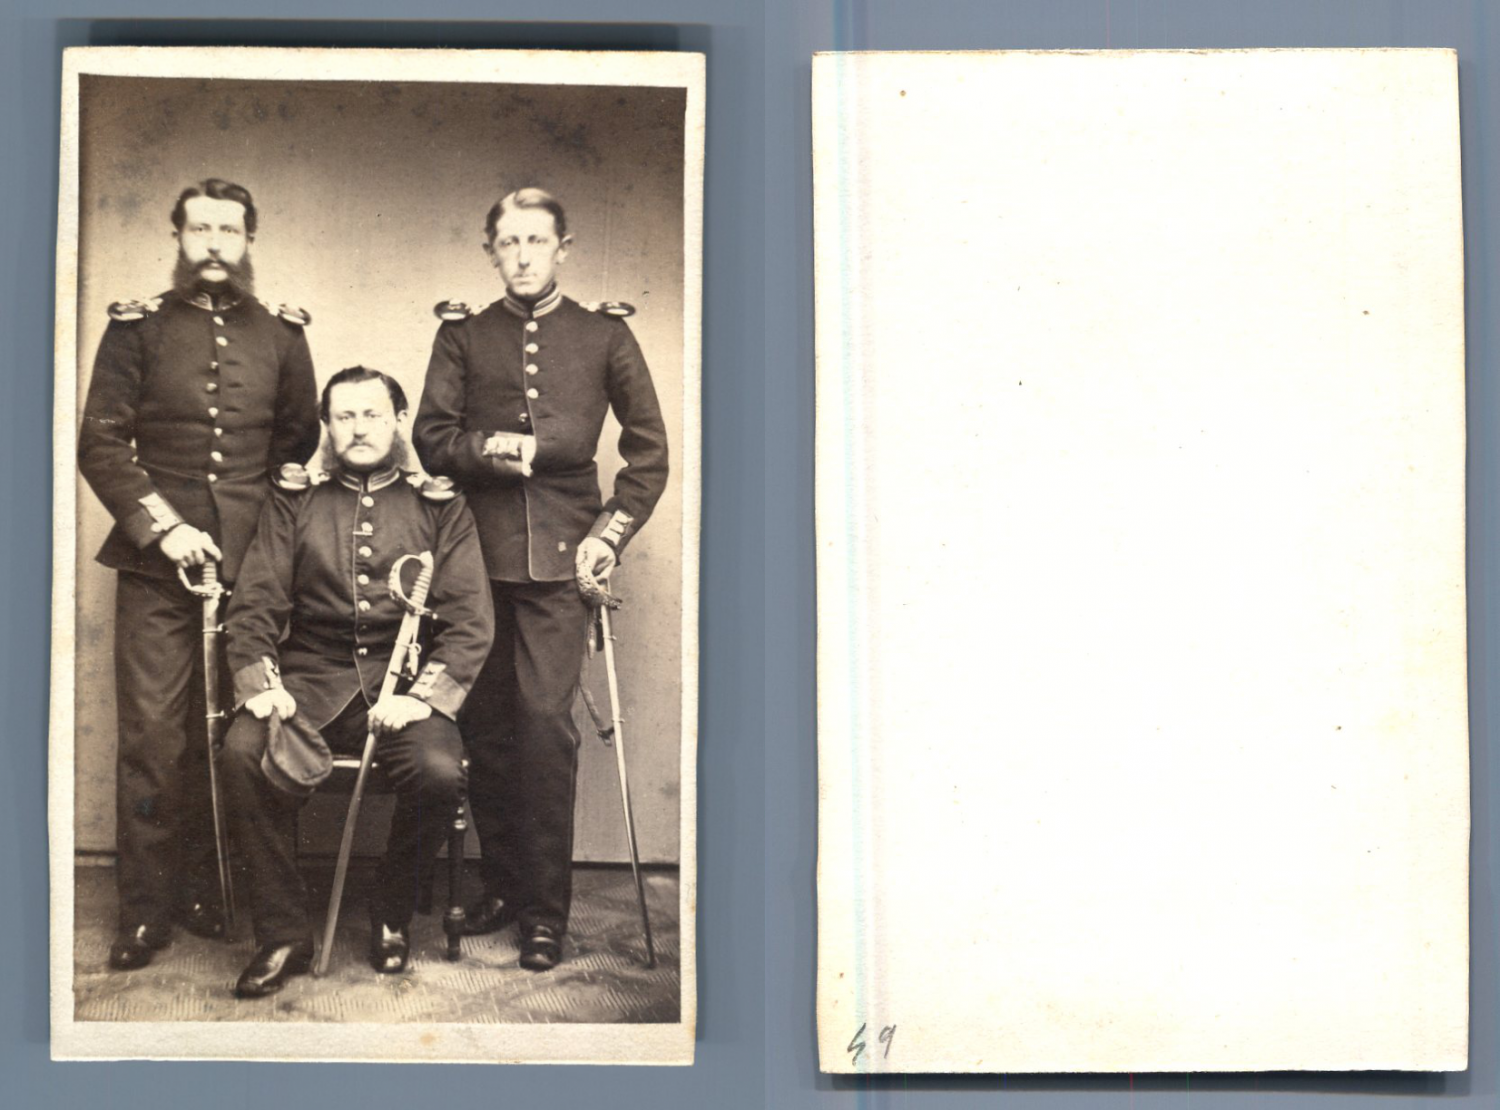 german officer    #CDV #portraits #Militaires